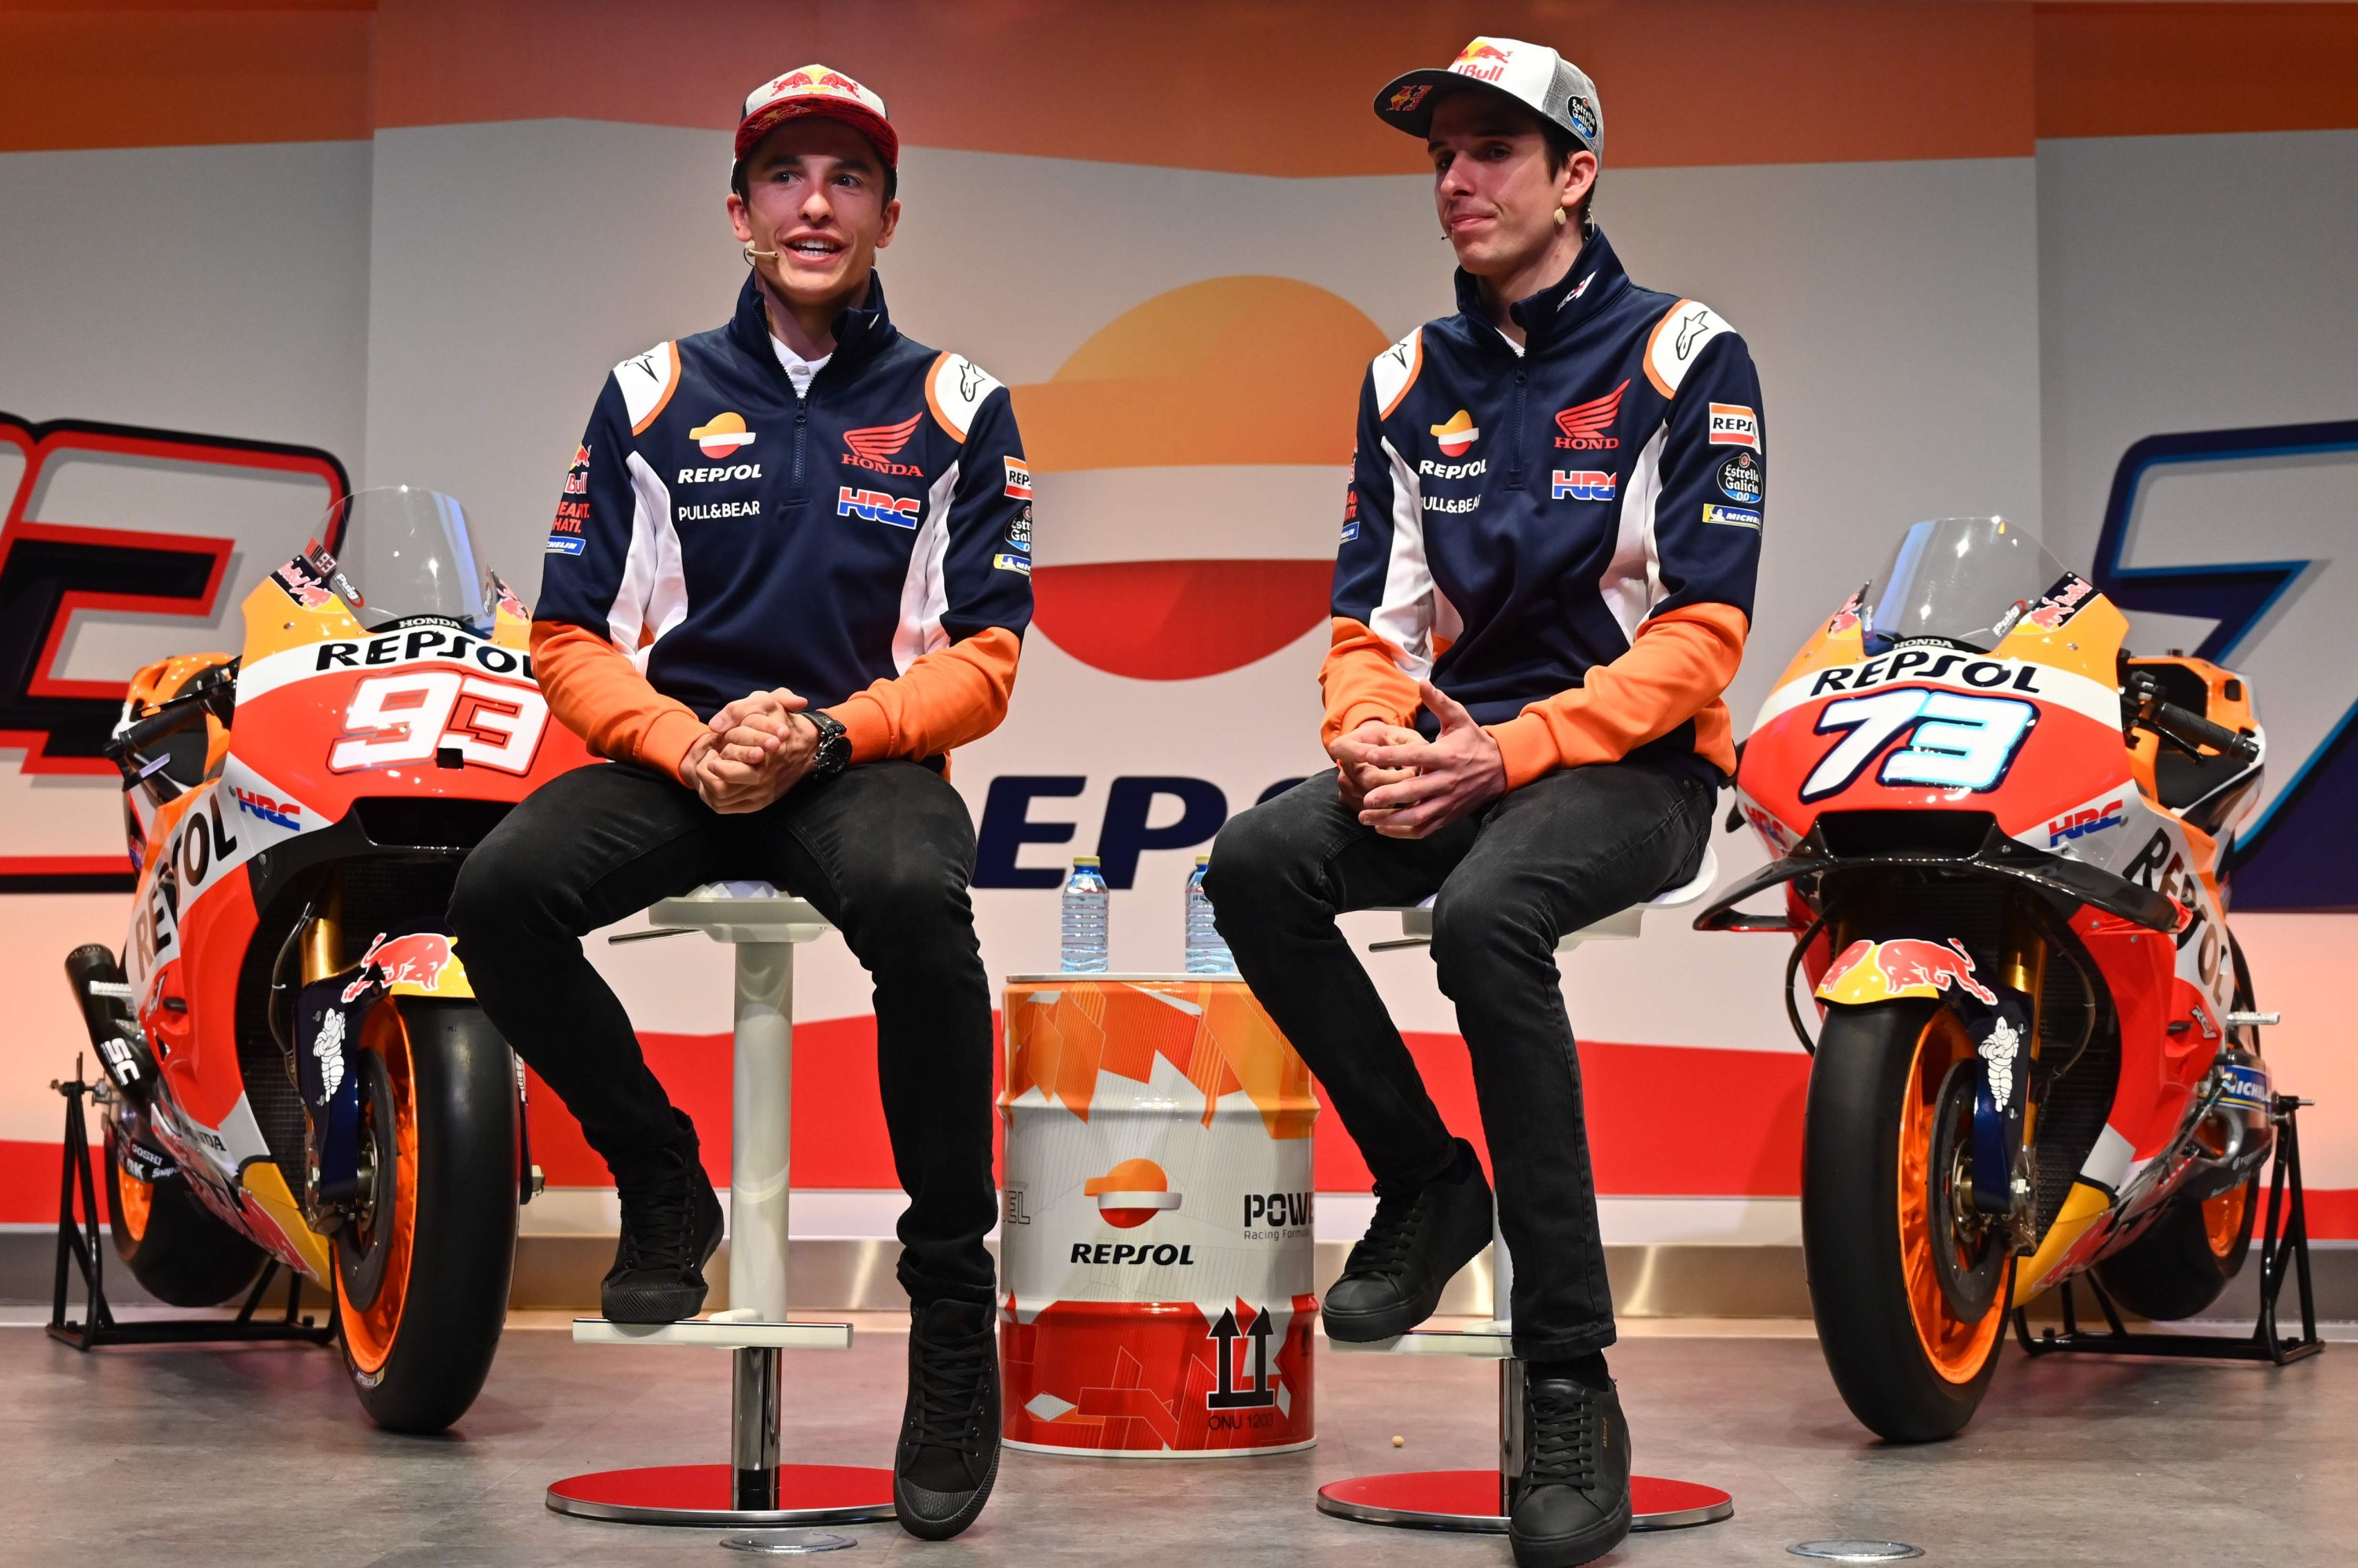 Marquez Brothers To Race For Same Team In Motogp First Daily Sabah